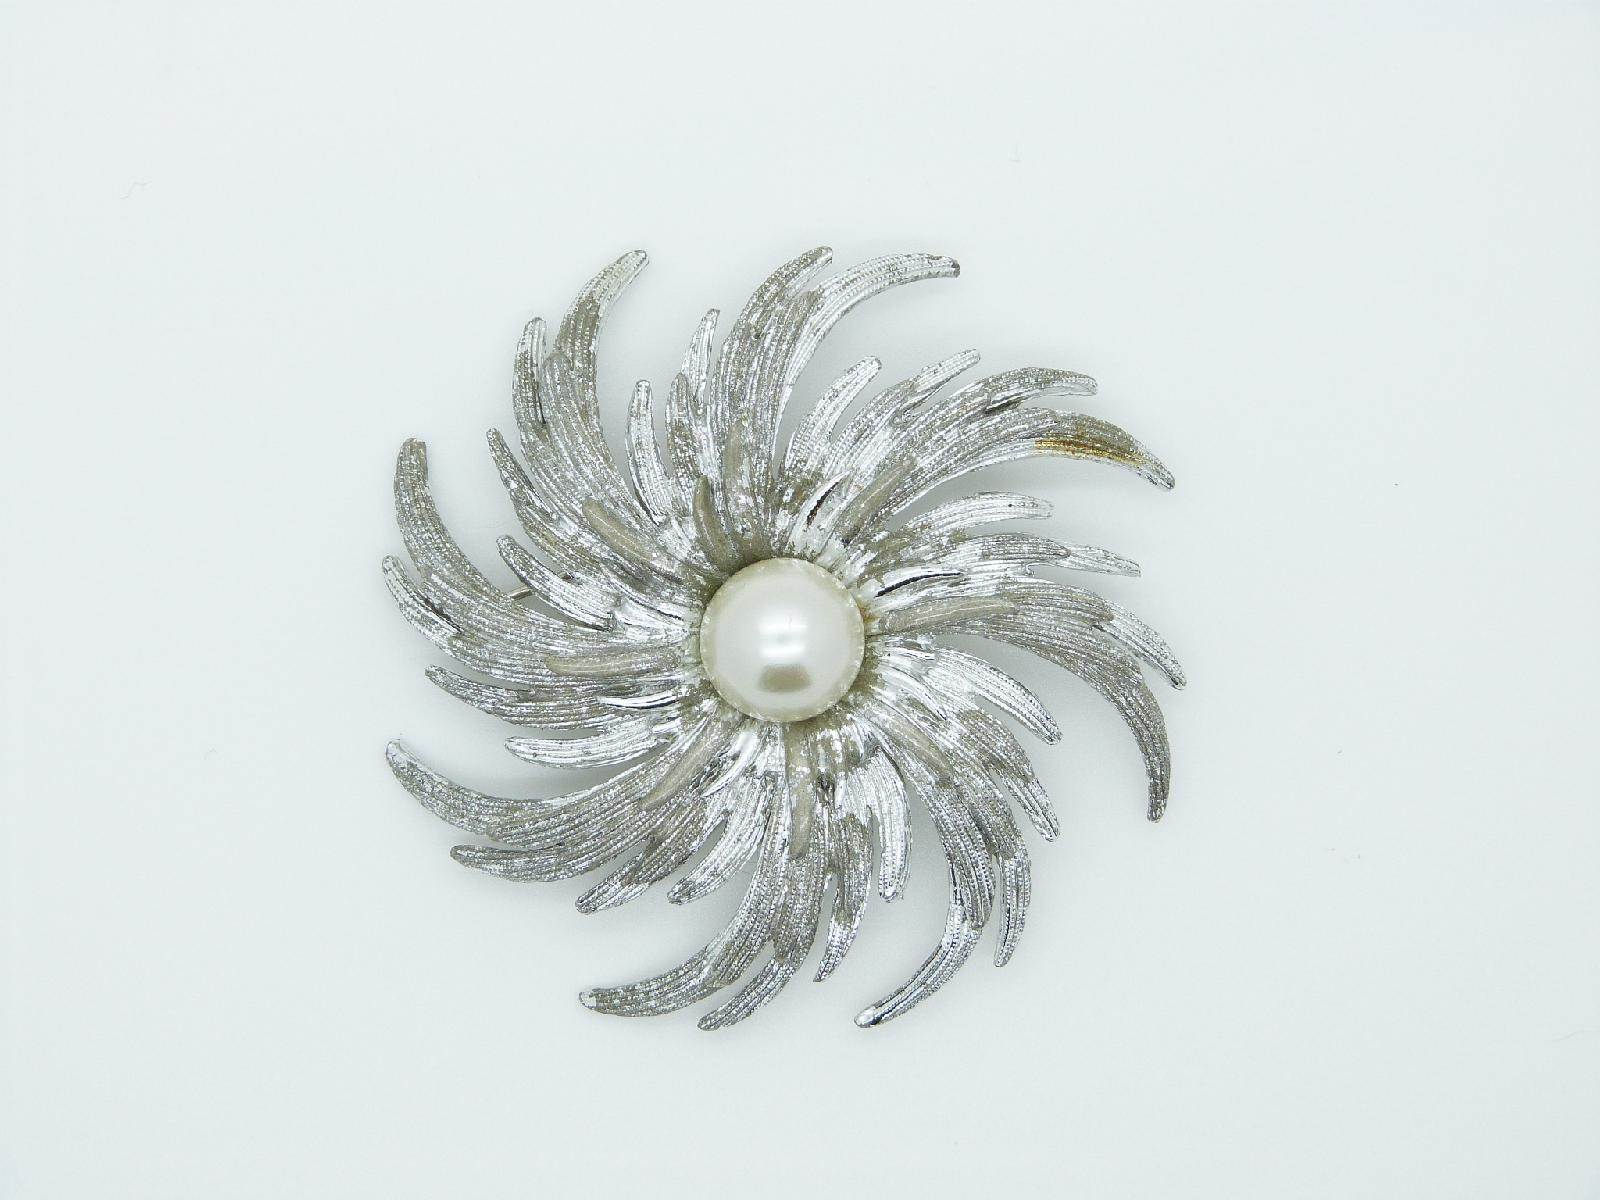 Vintage 60s Signed Sarah Cov Large Silvertone Swirl Pearl Design Brooch